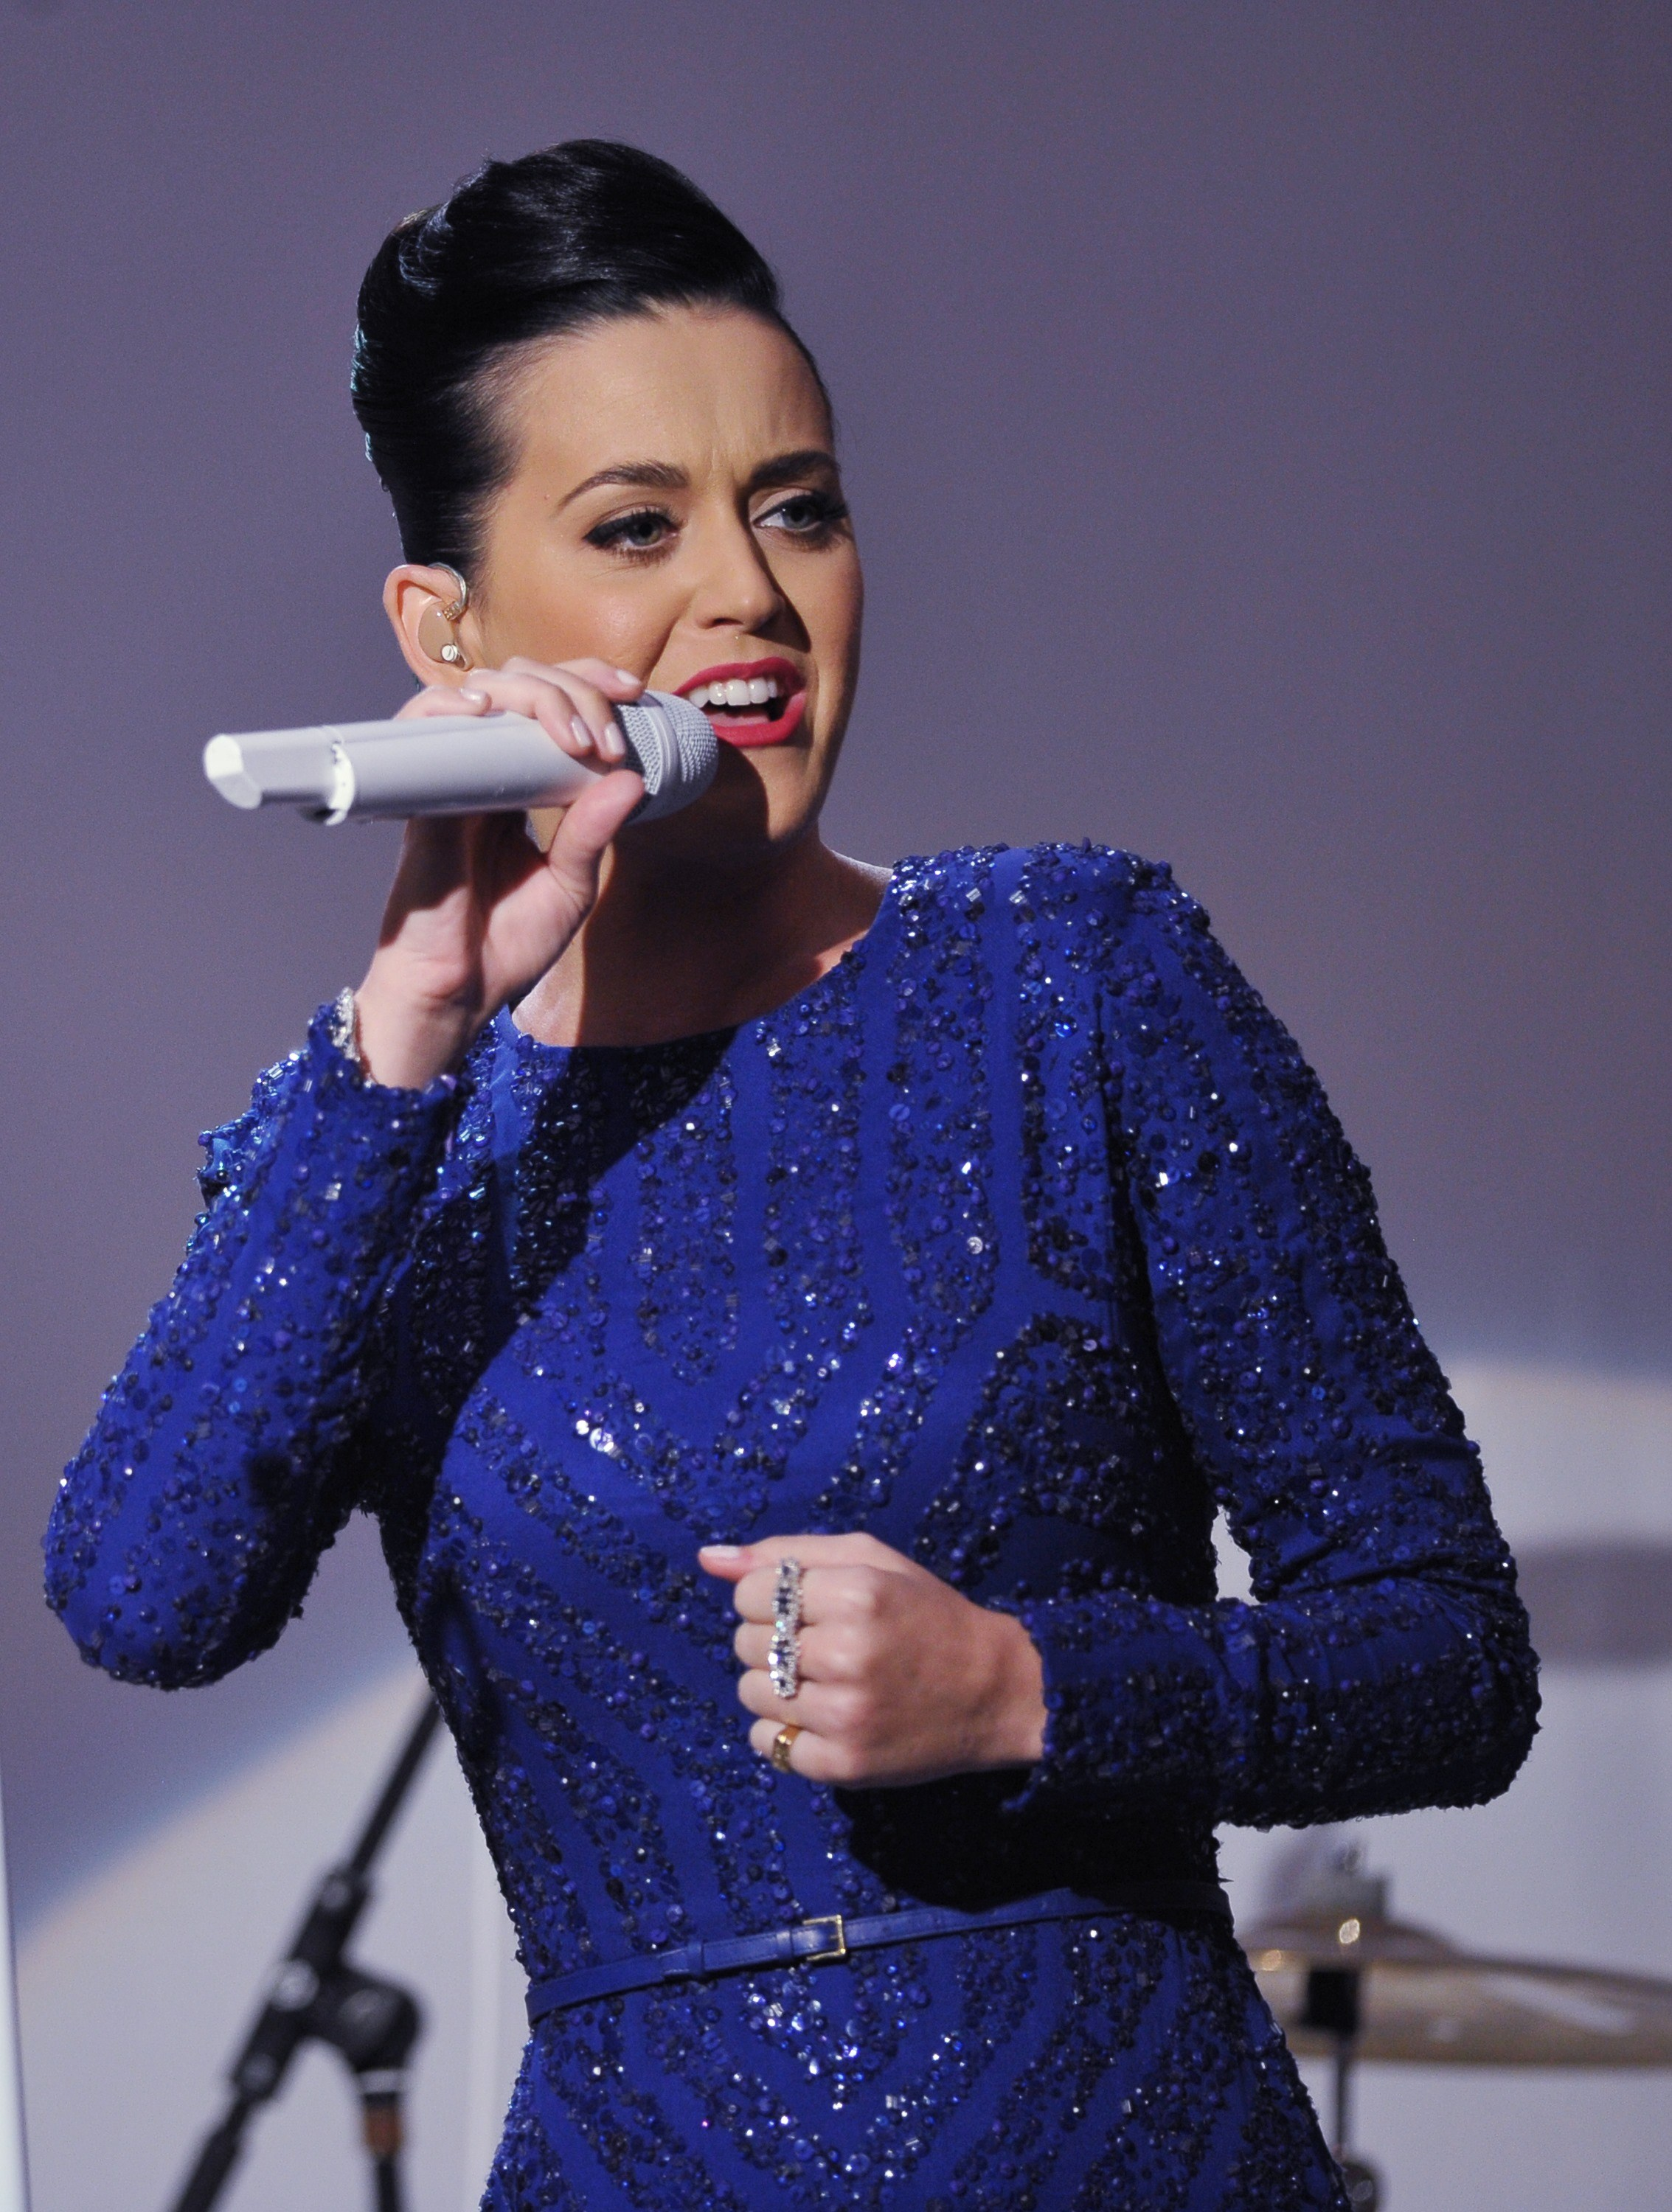 Singer Katy Perry performs at a concert in celebration of the Special Olympics on July 31, 2014 in the East Room of the White House in Washington, DC.    (MANDEL NGAN--AFP/Getty Images)